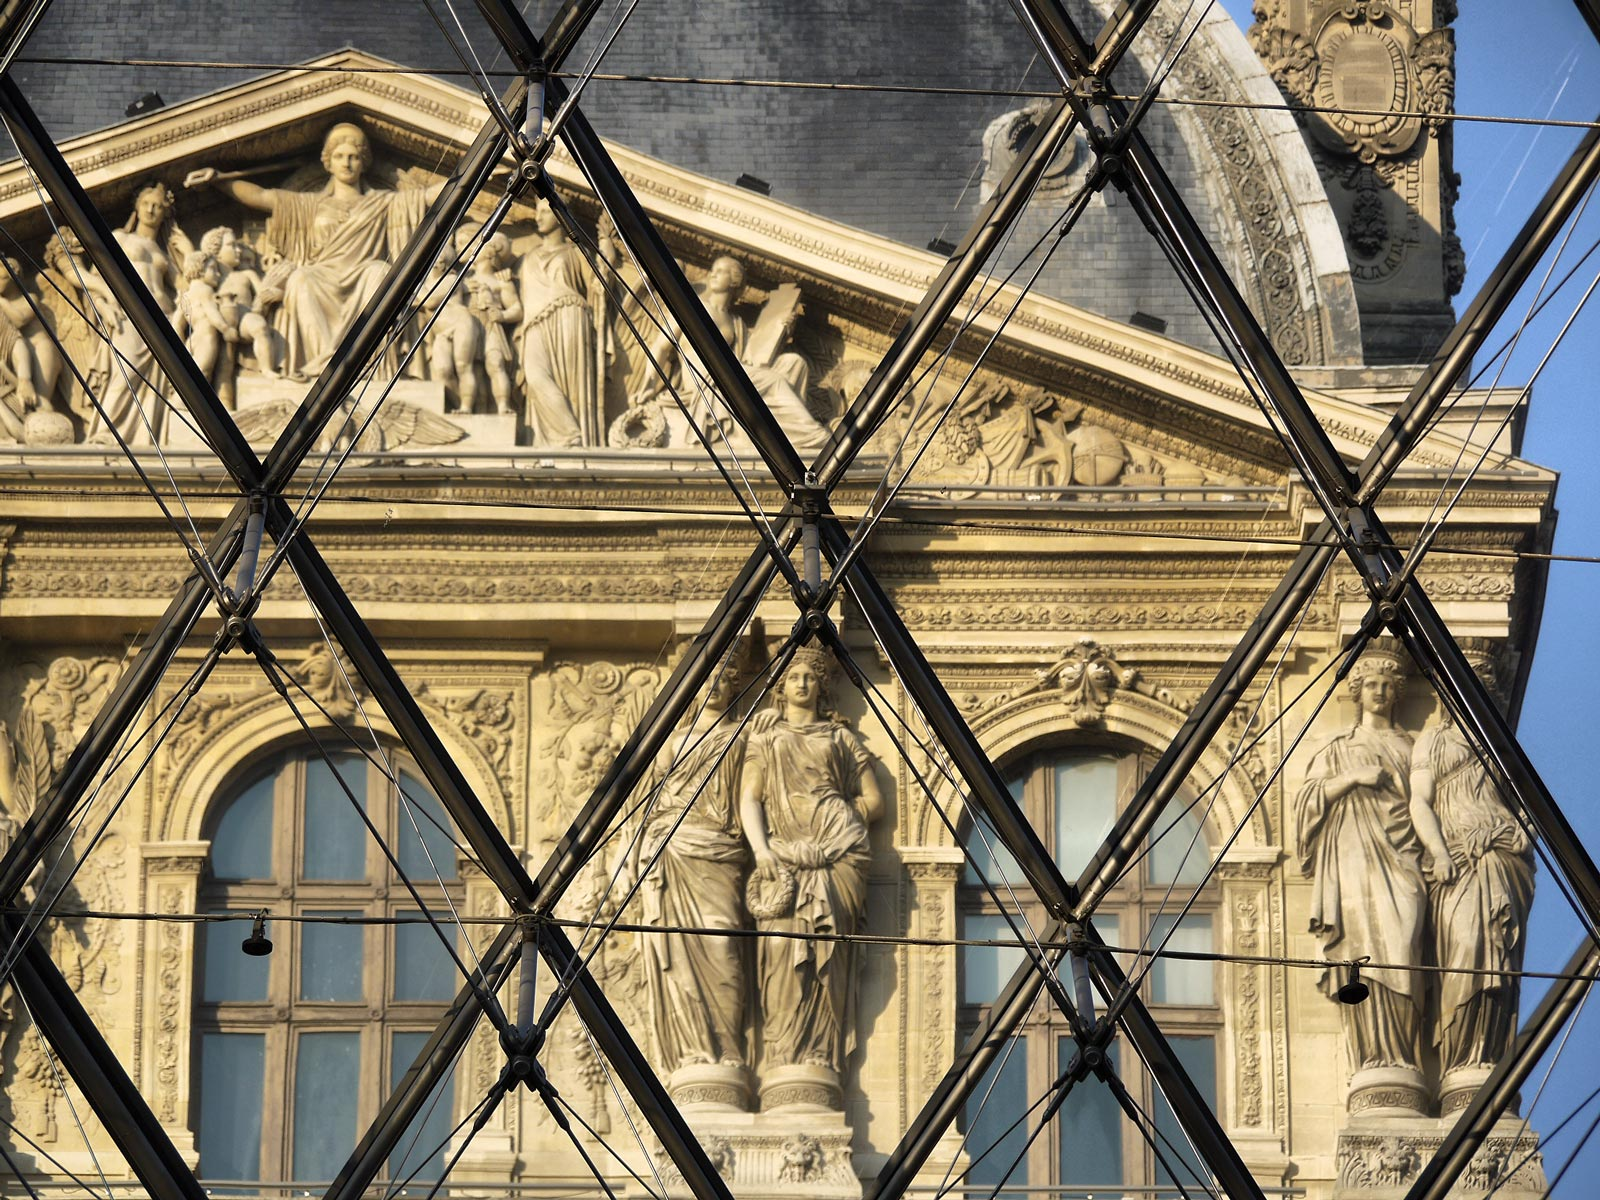 Louvre Palace: From the Inside Looking Out - Paris, France